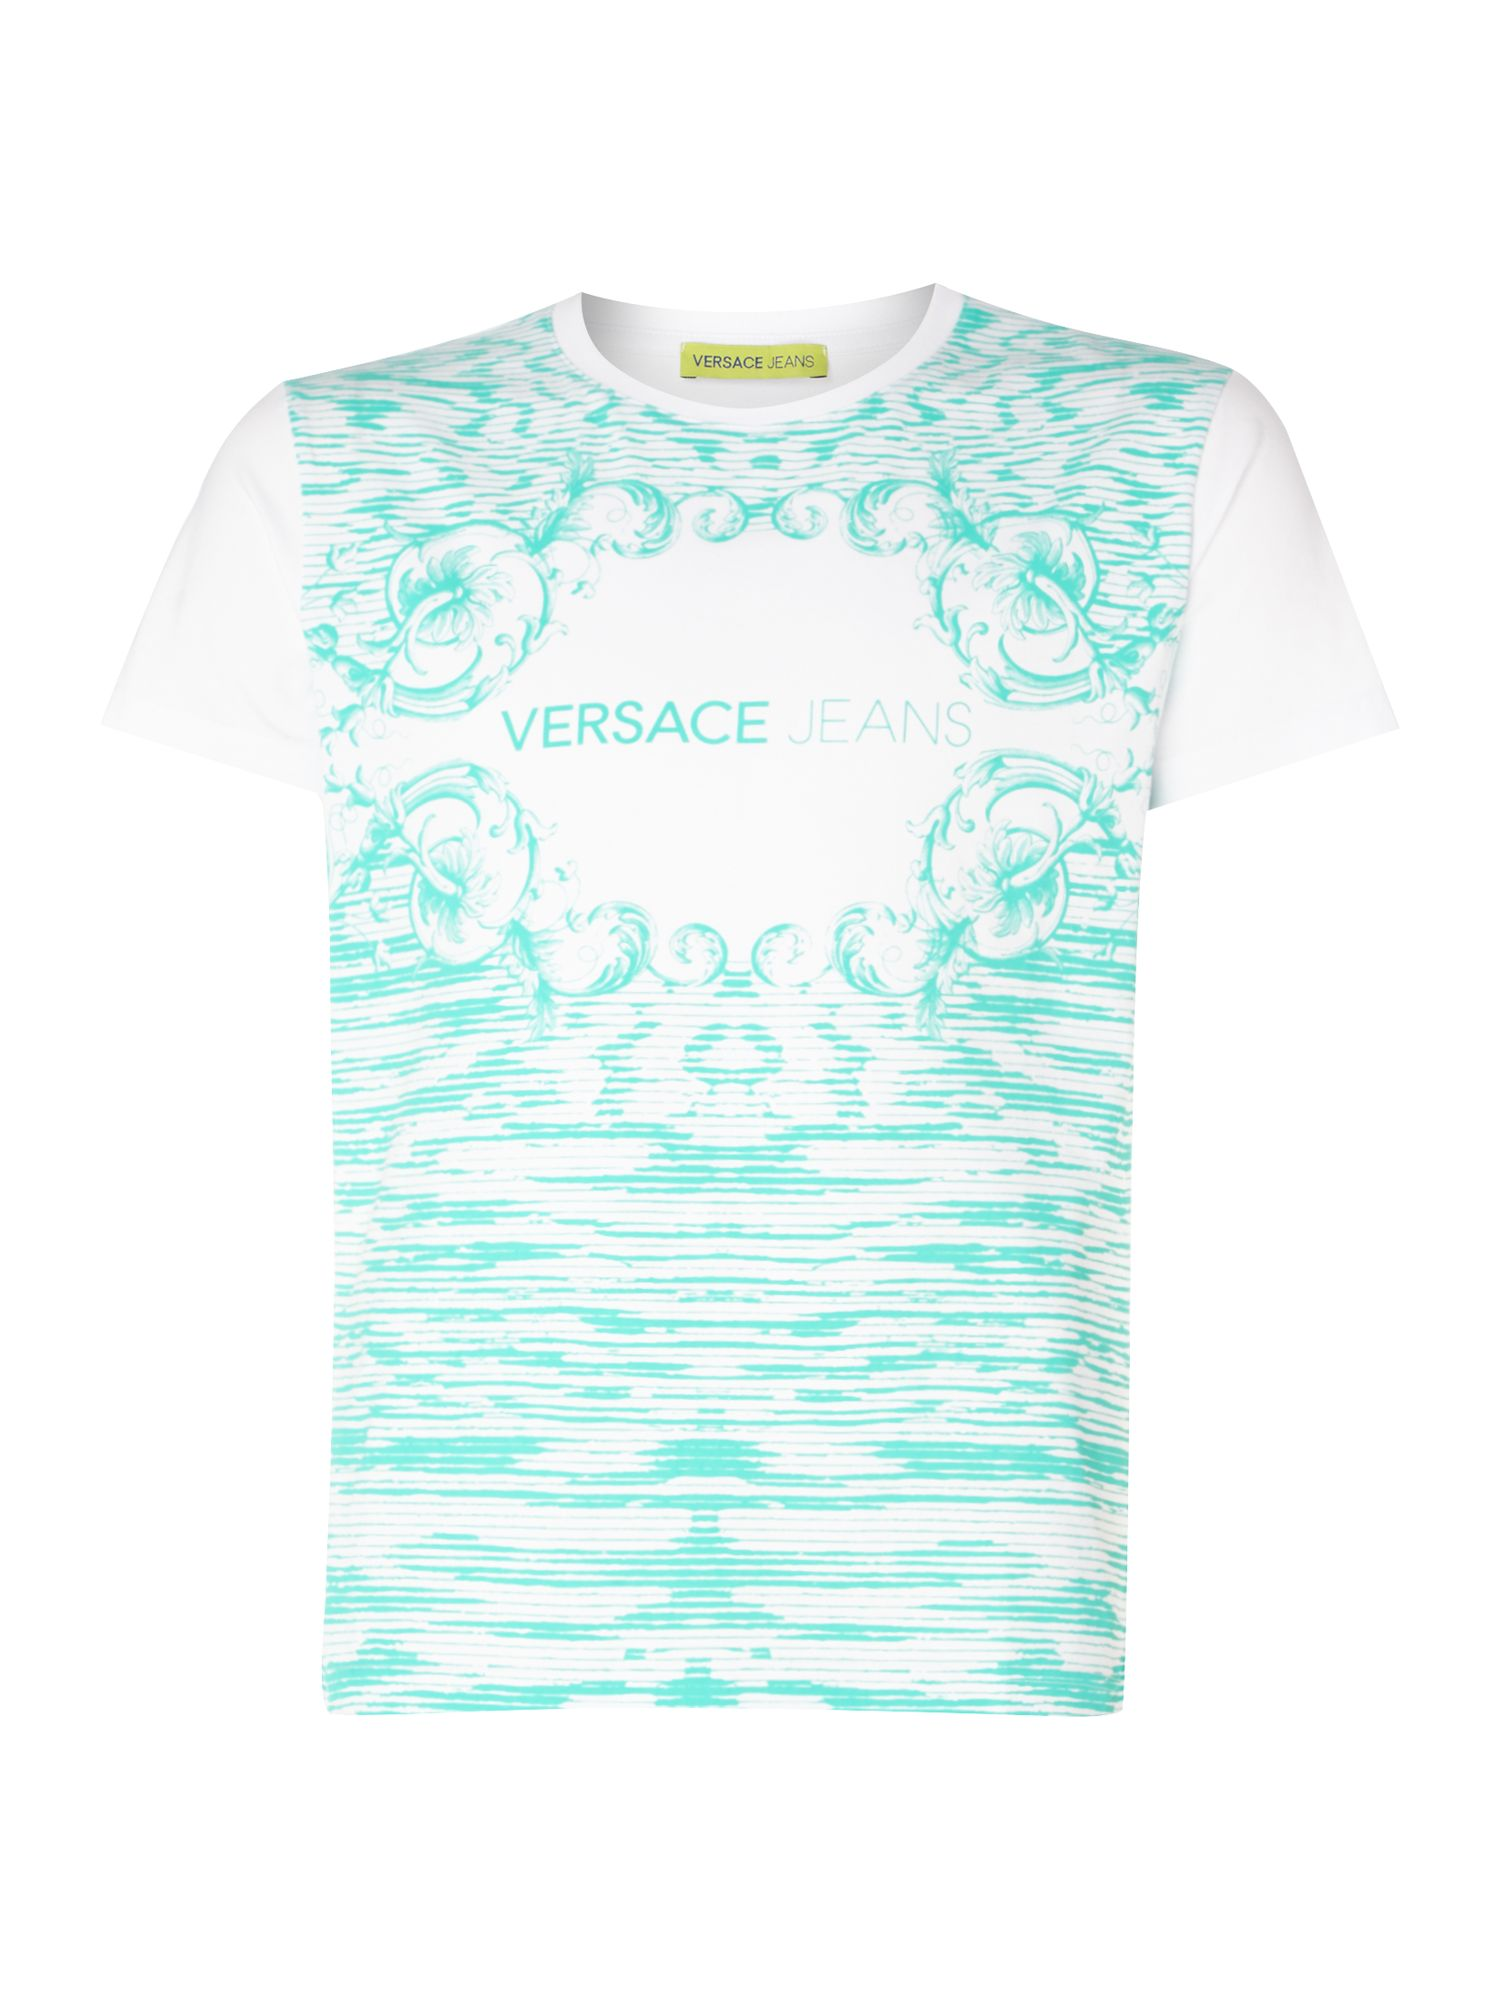 Versace Jeans Men's Versace Jeans Slim fit all-over printed t-shirt, White